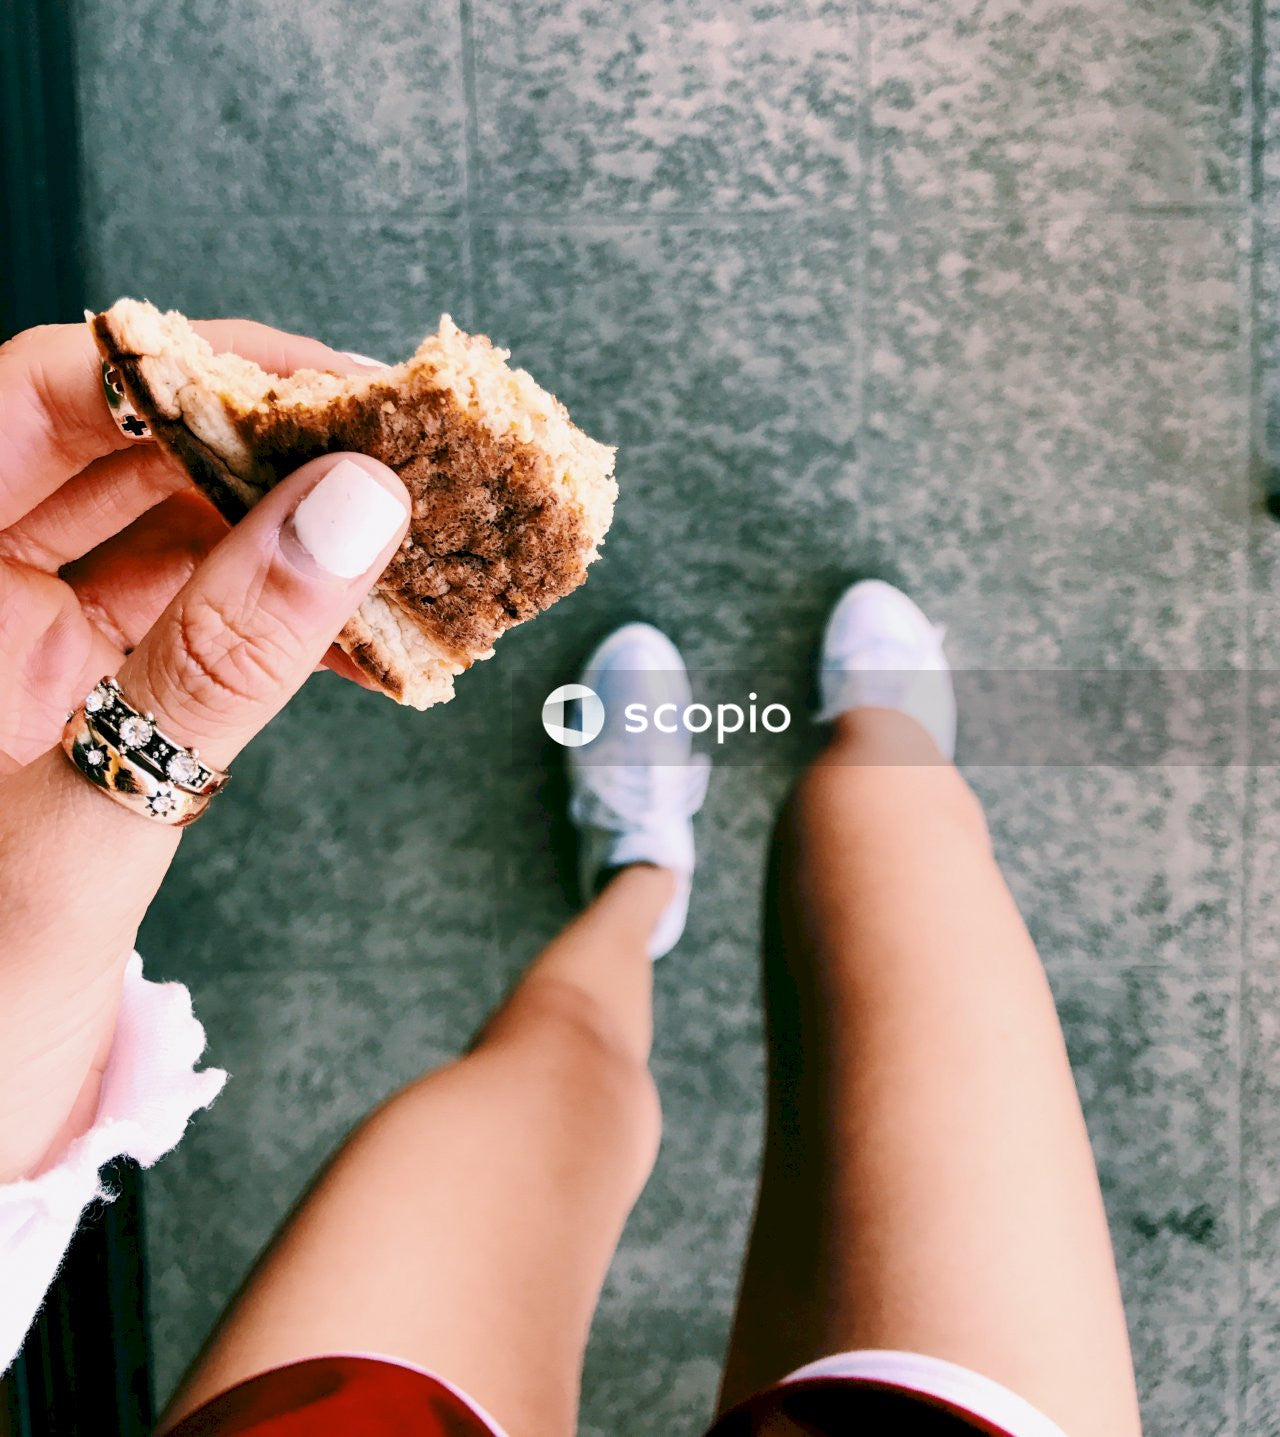 Person holding brown bread with white cream